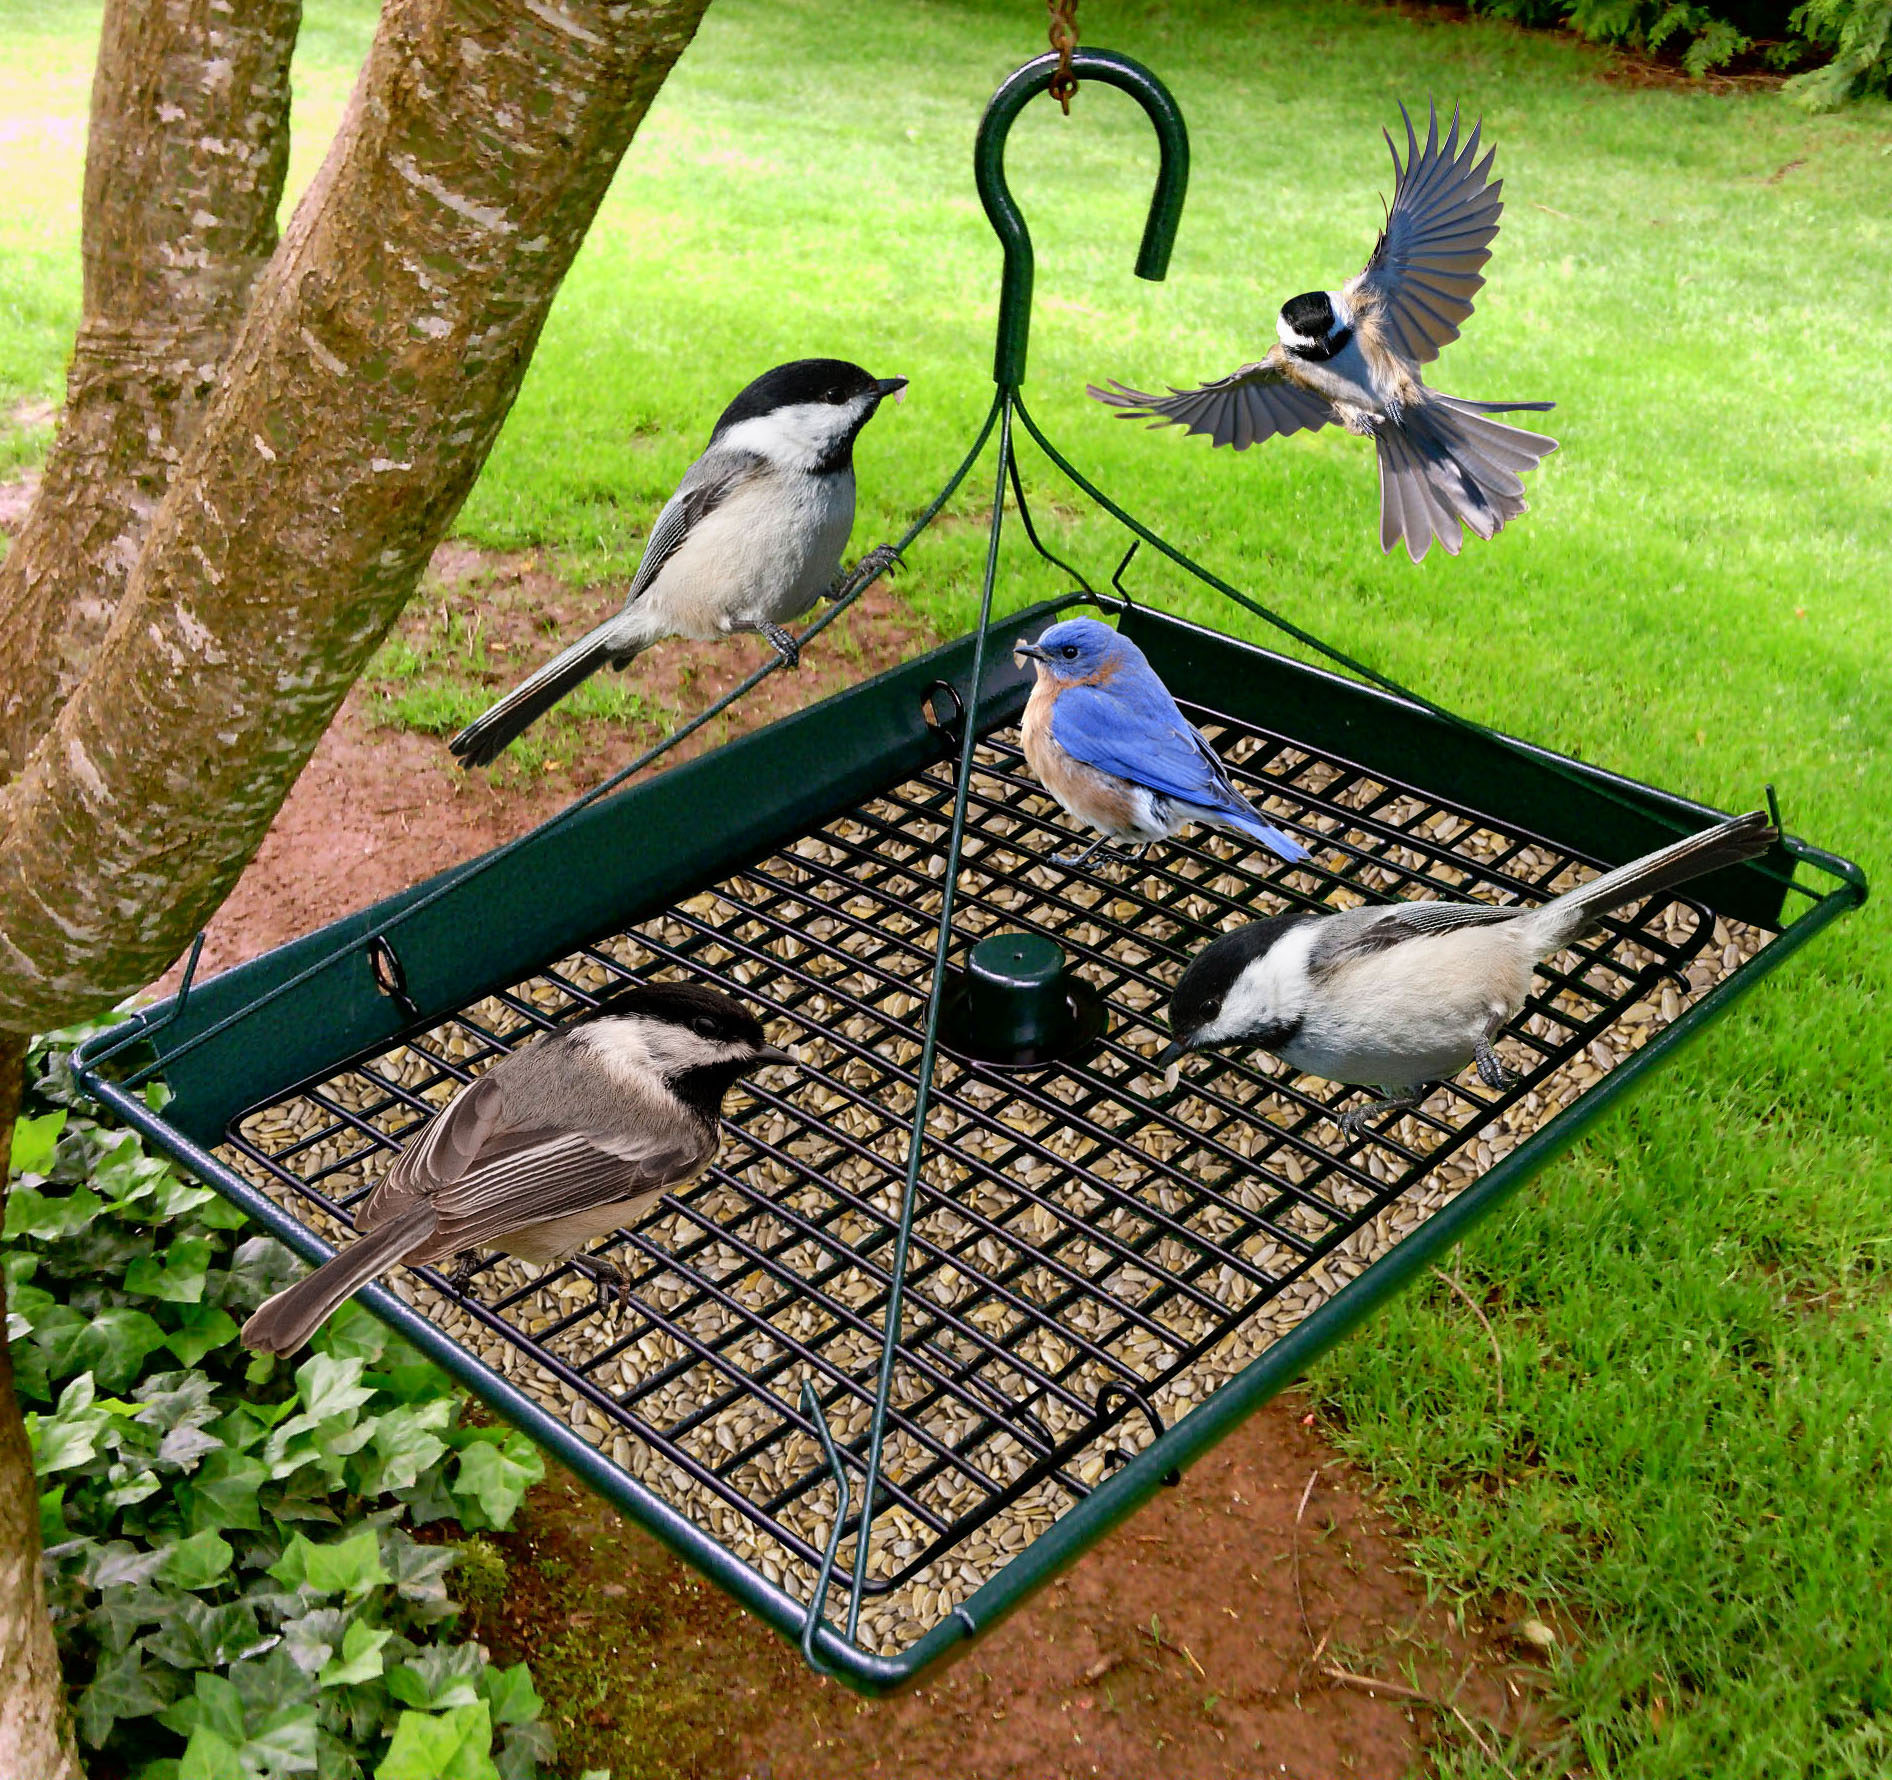 Zenport Bird Feeder Z203009 3-in-1 Platform Bird Seed Feeder